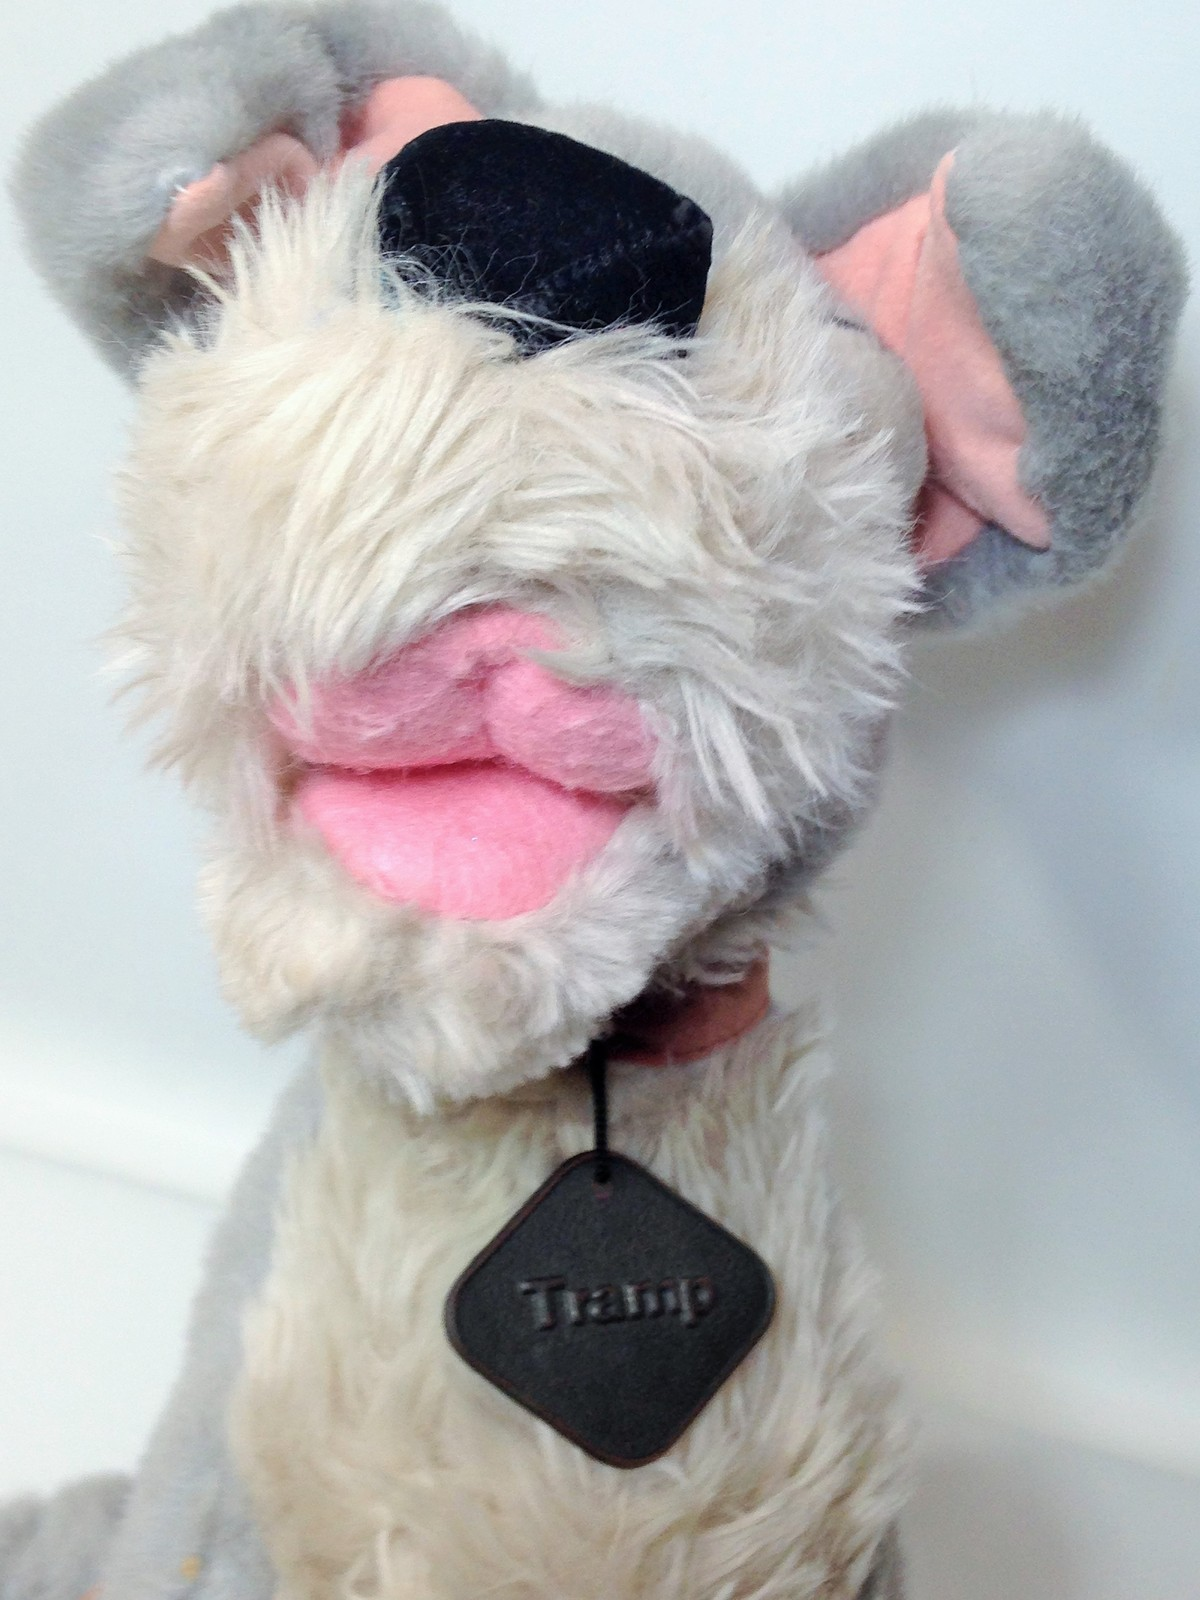 "Vintage Disney Tramp Plush Dog Grey Stuffed Animal Metal DogTag 14"" image 11"